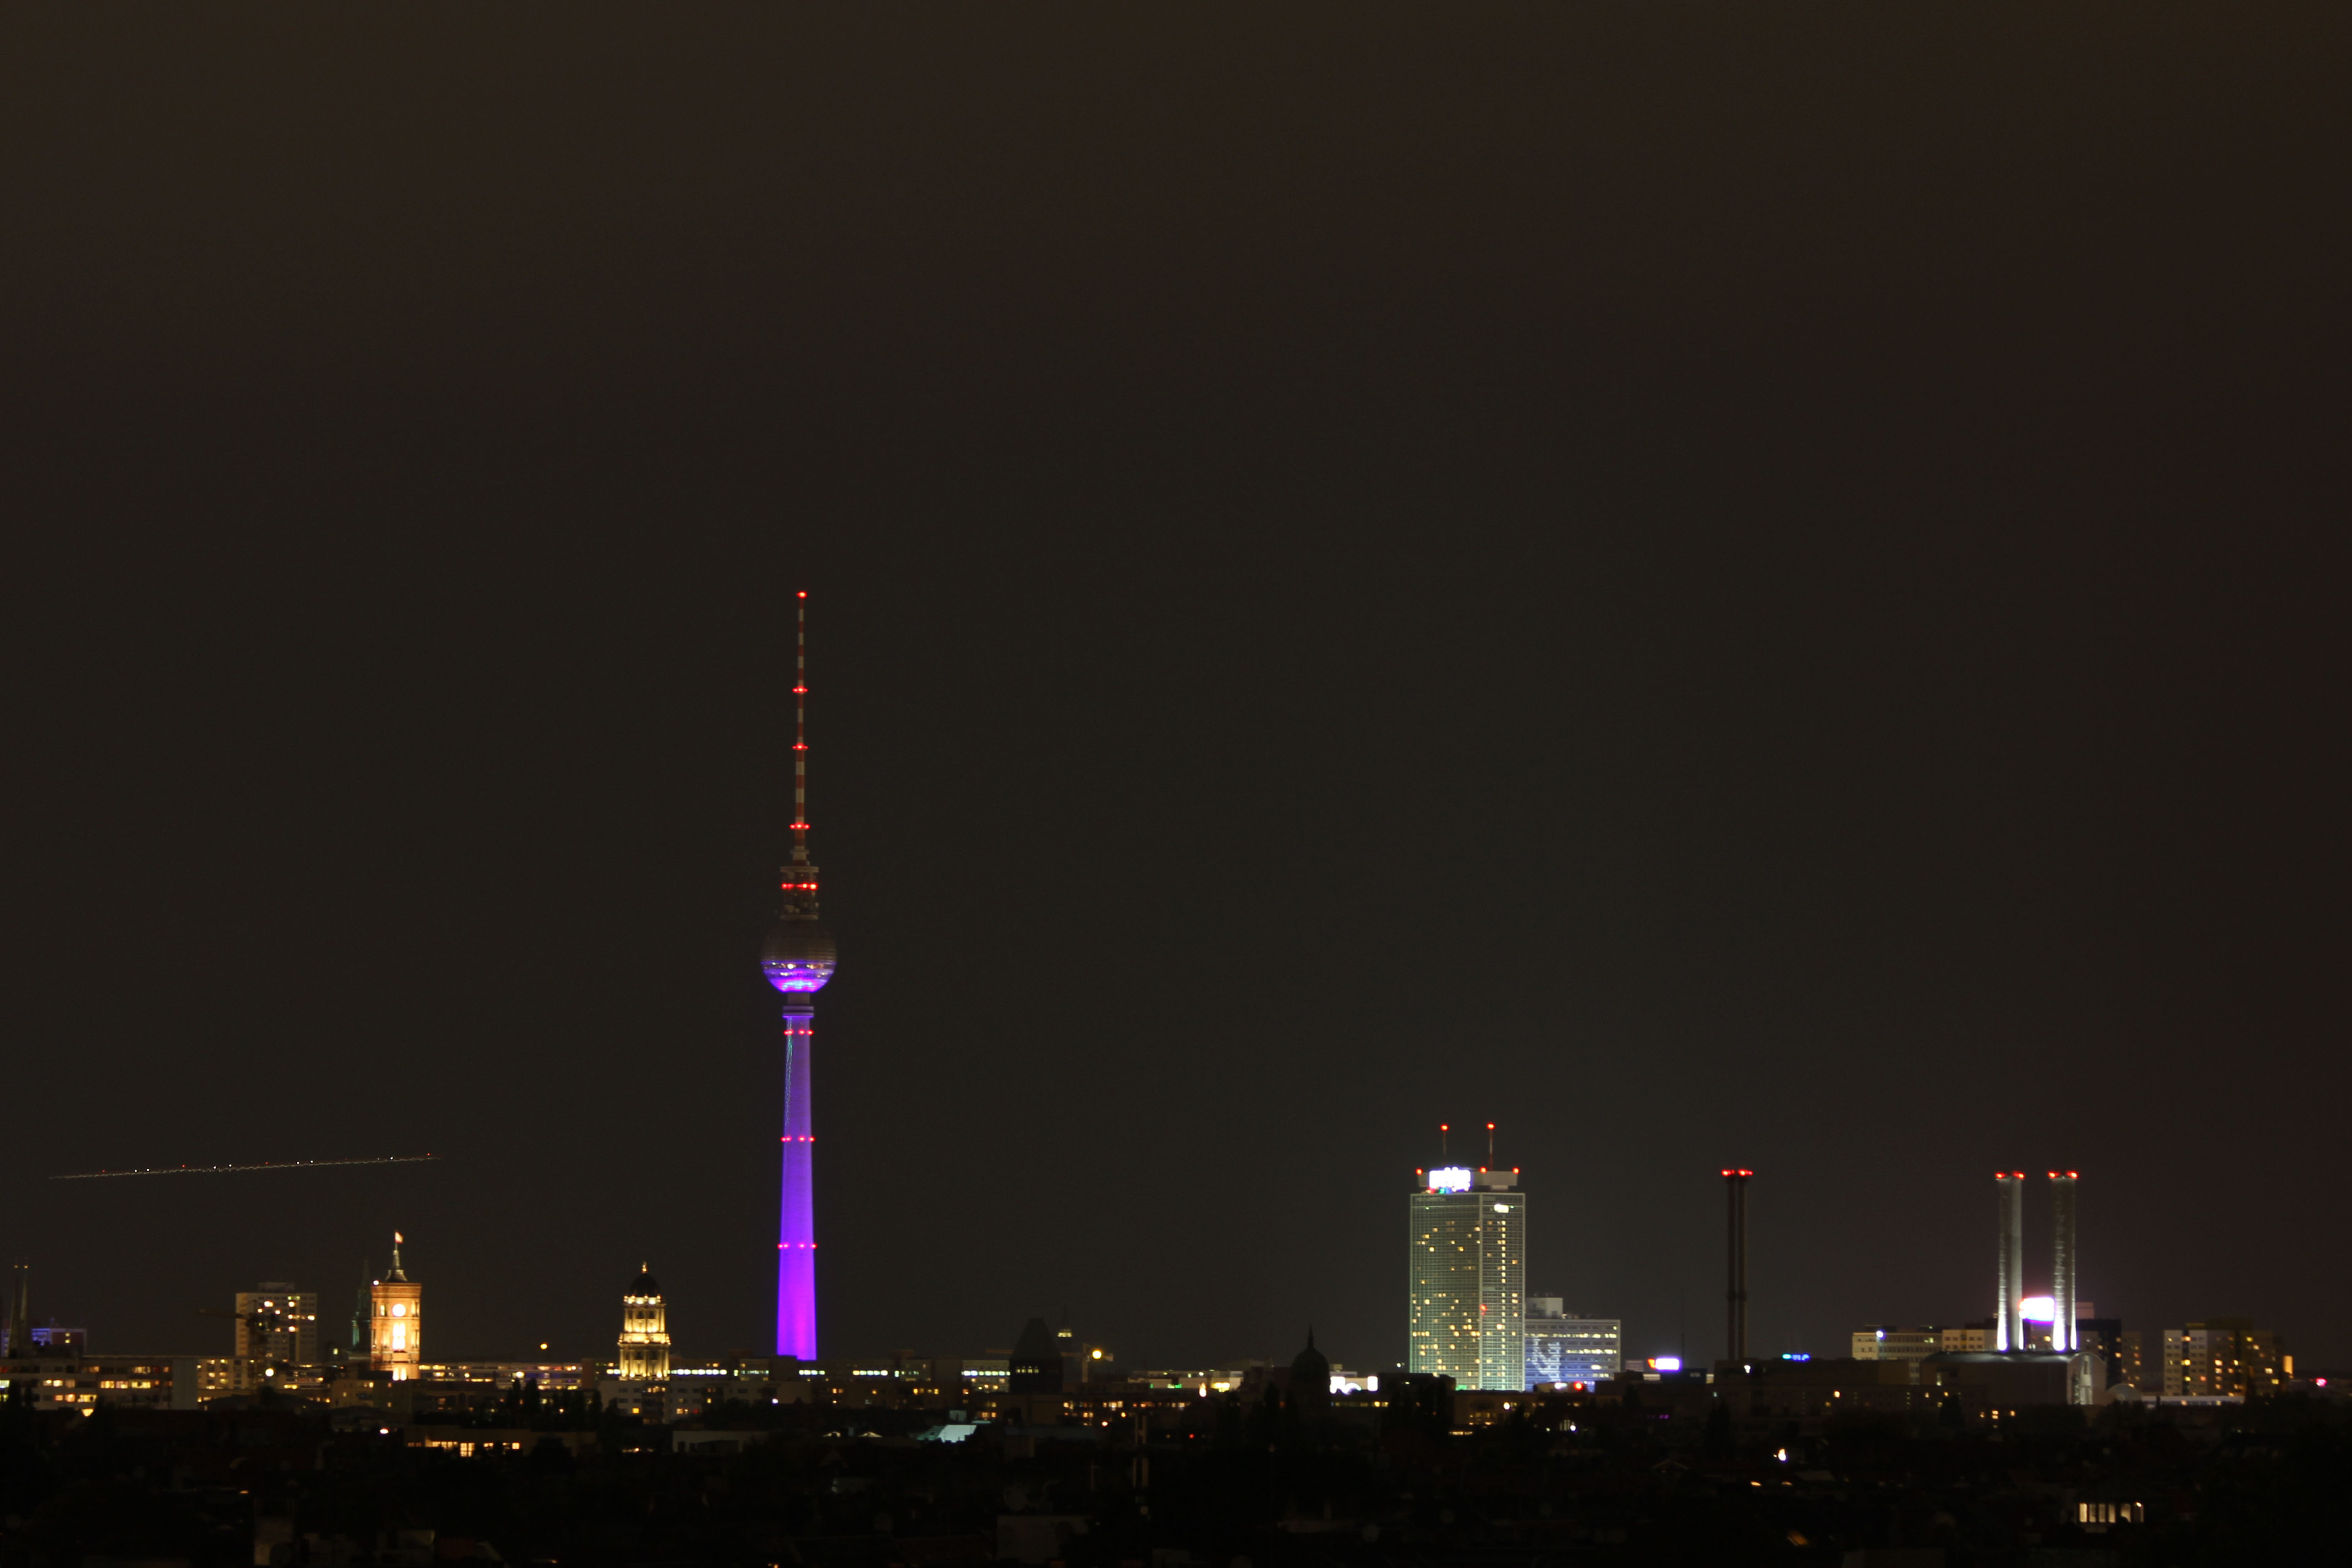 The Berlin skyline at night from the roof of the parking garage of the Neukölln Arcaden